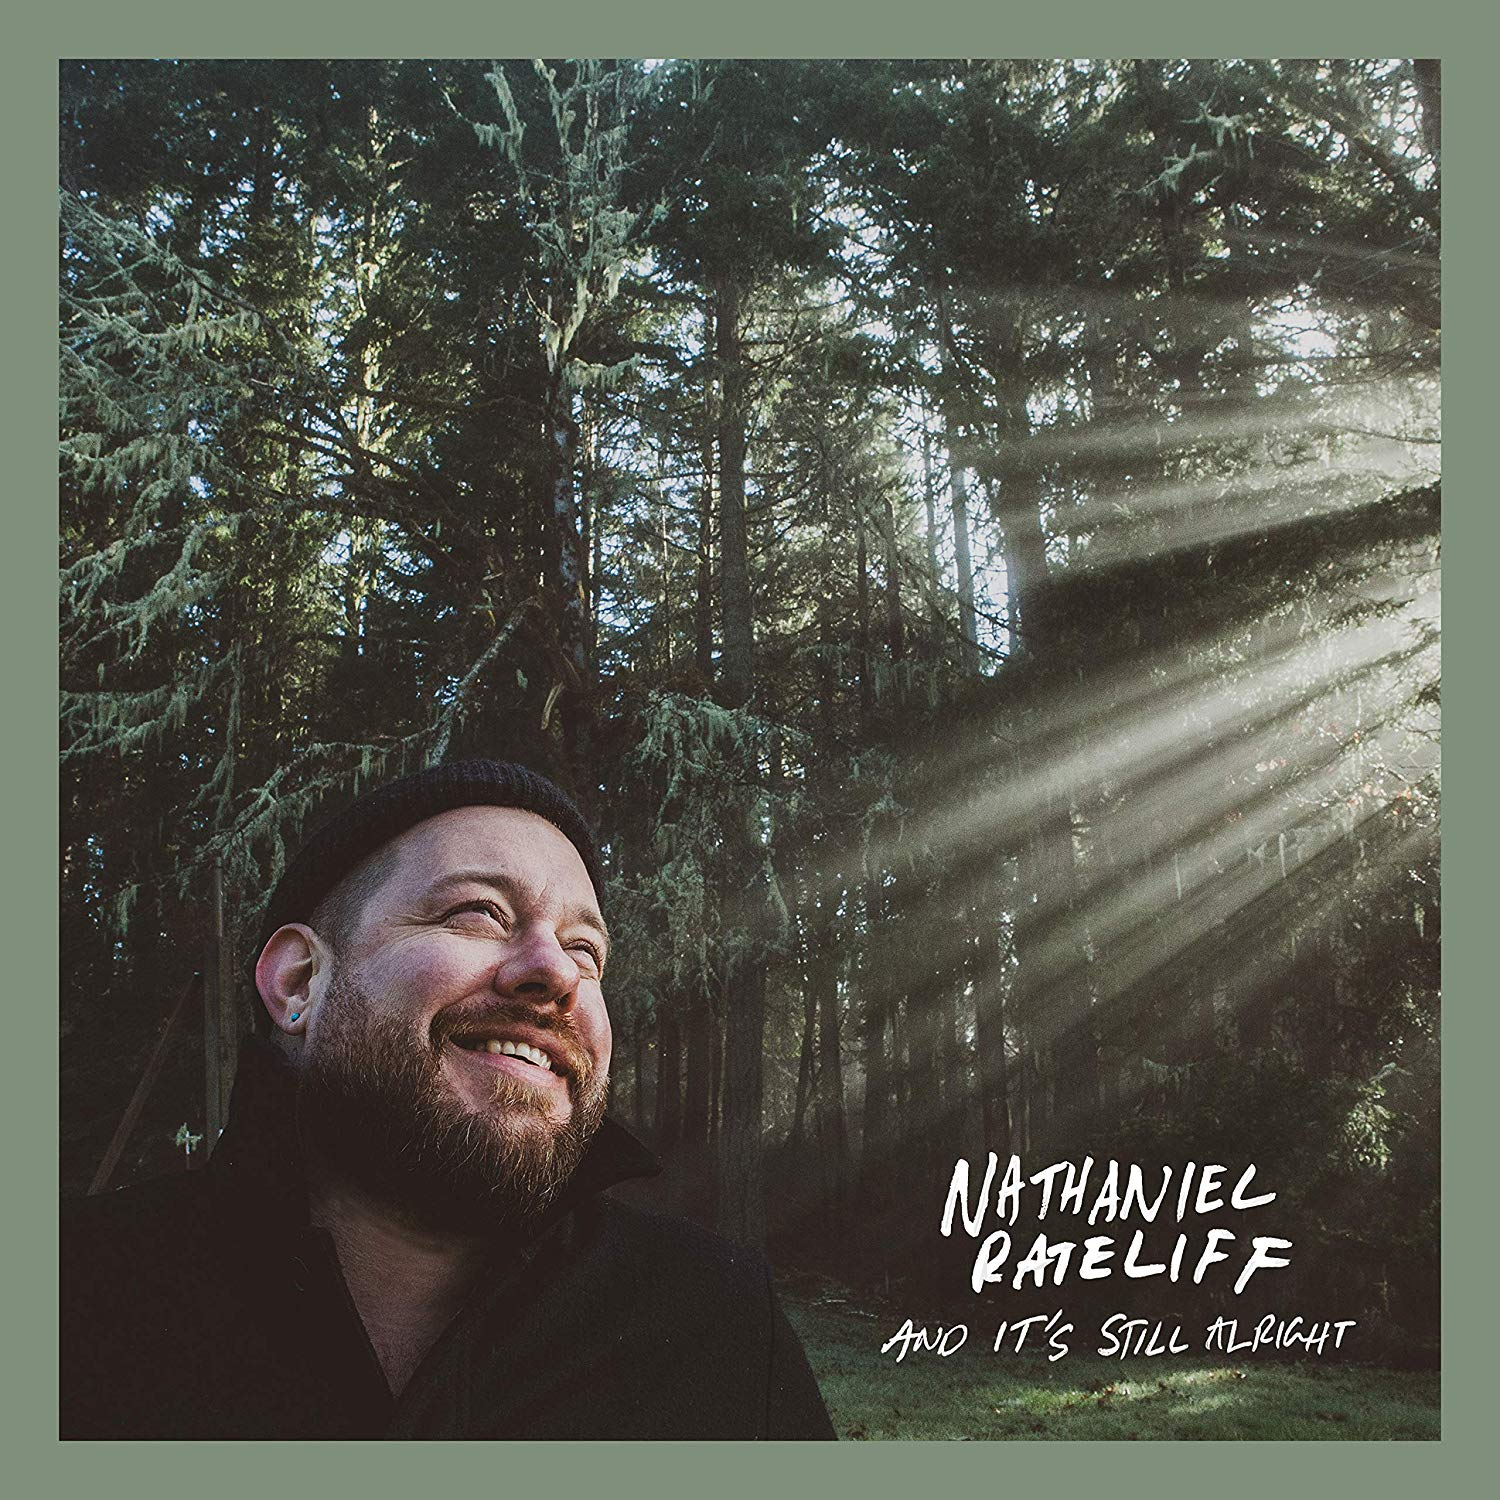 Nathaniel Rateliff - And It's Still Alright [Coke Bottle Green LP]